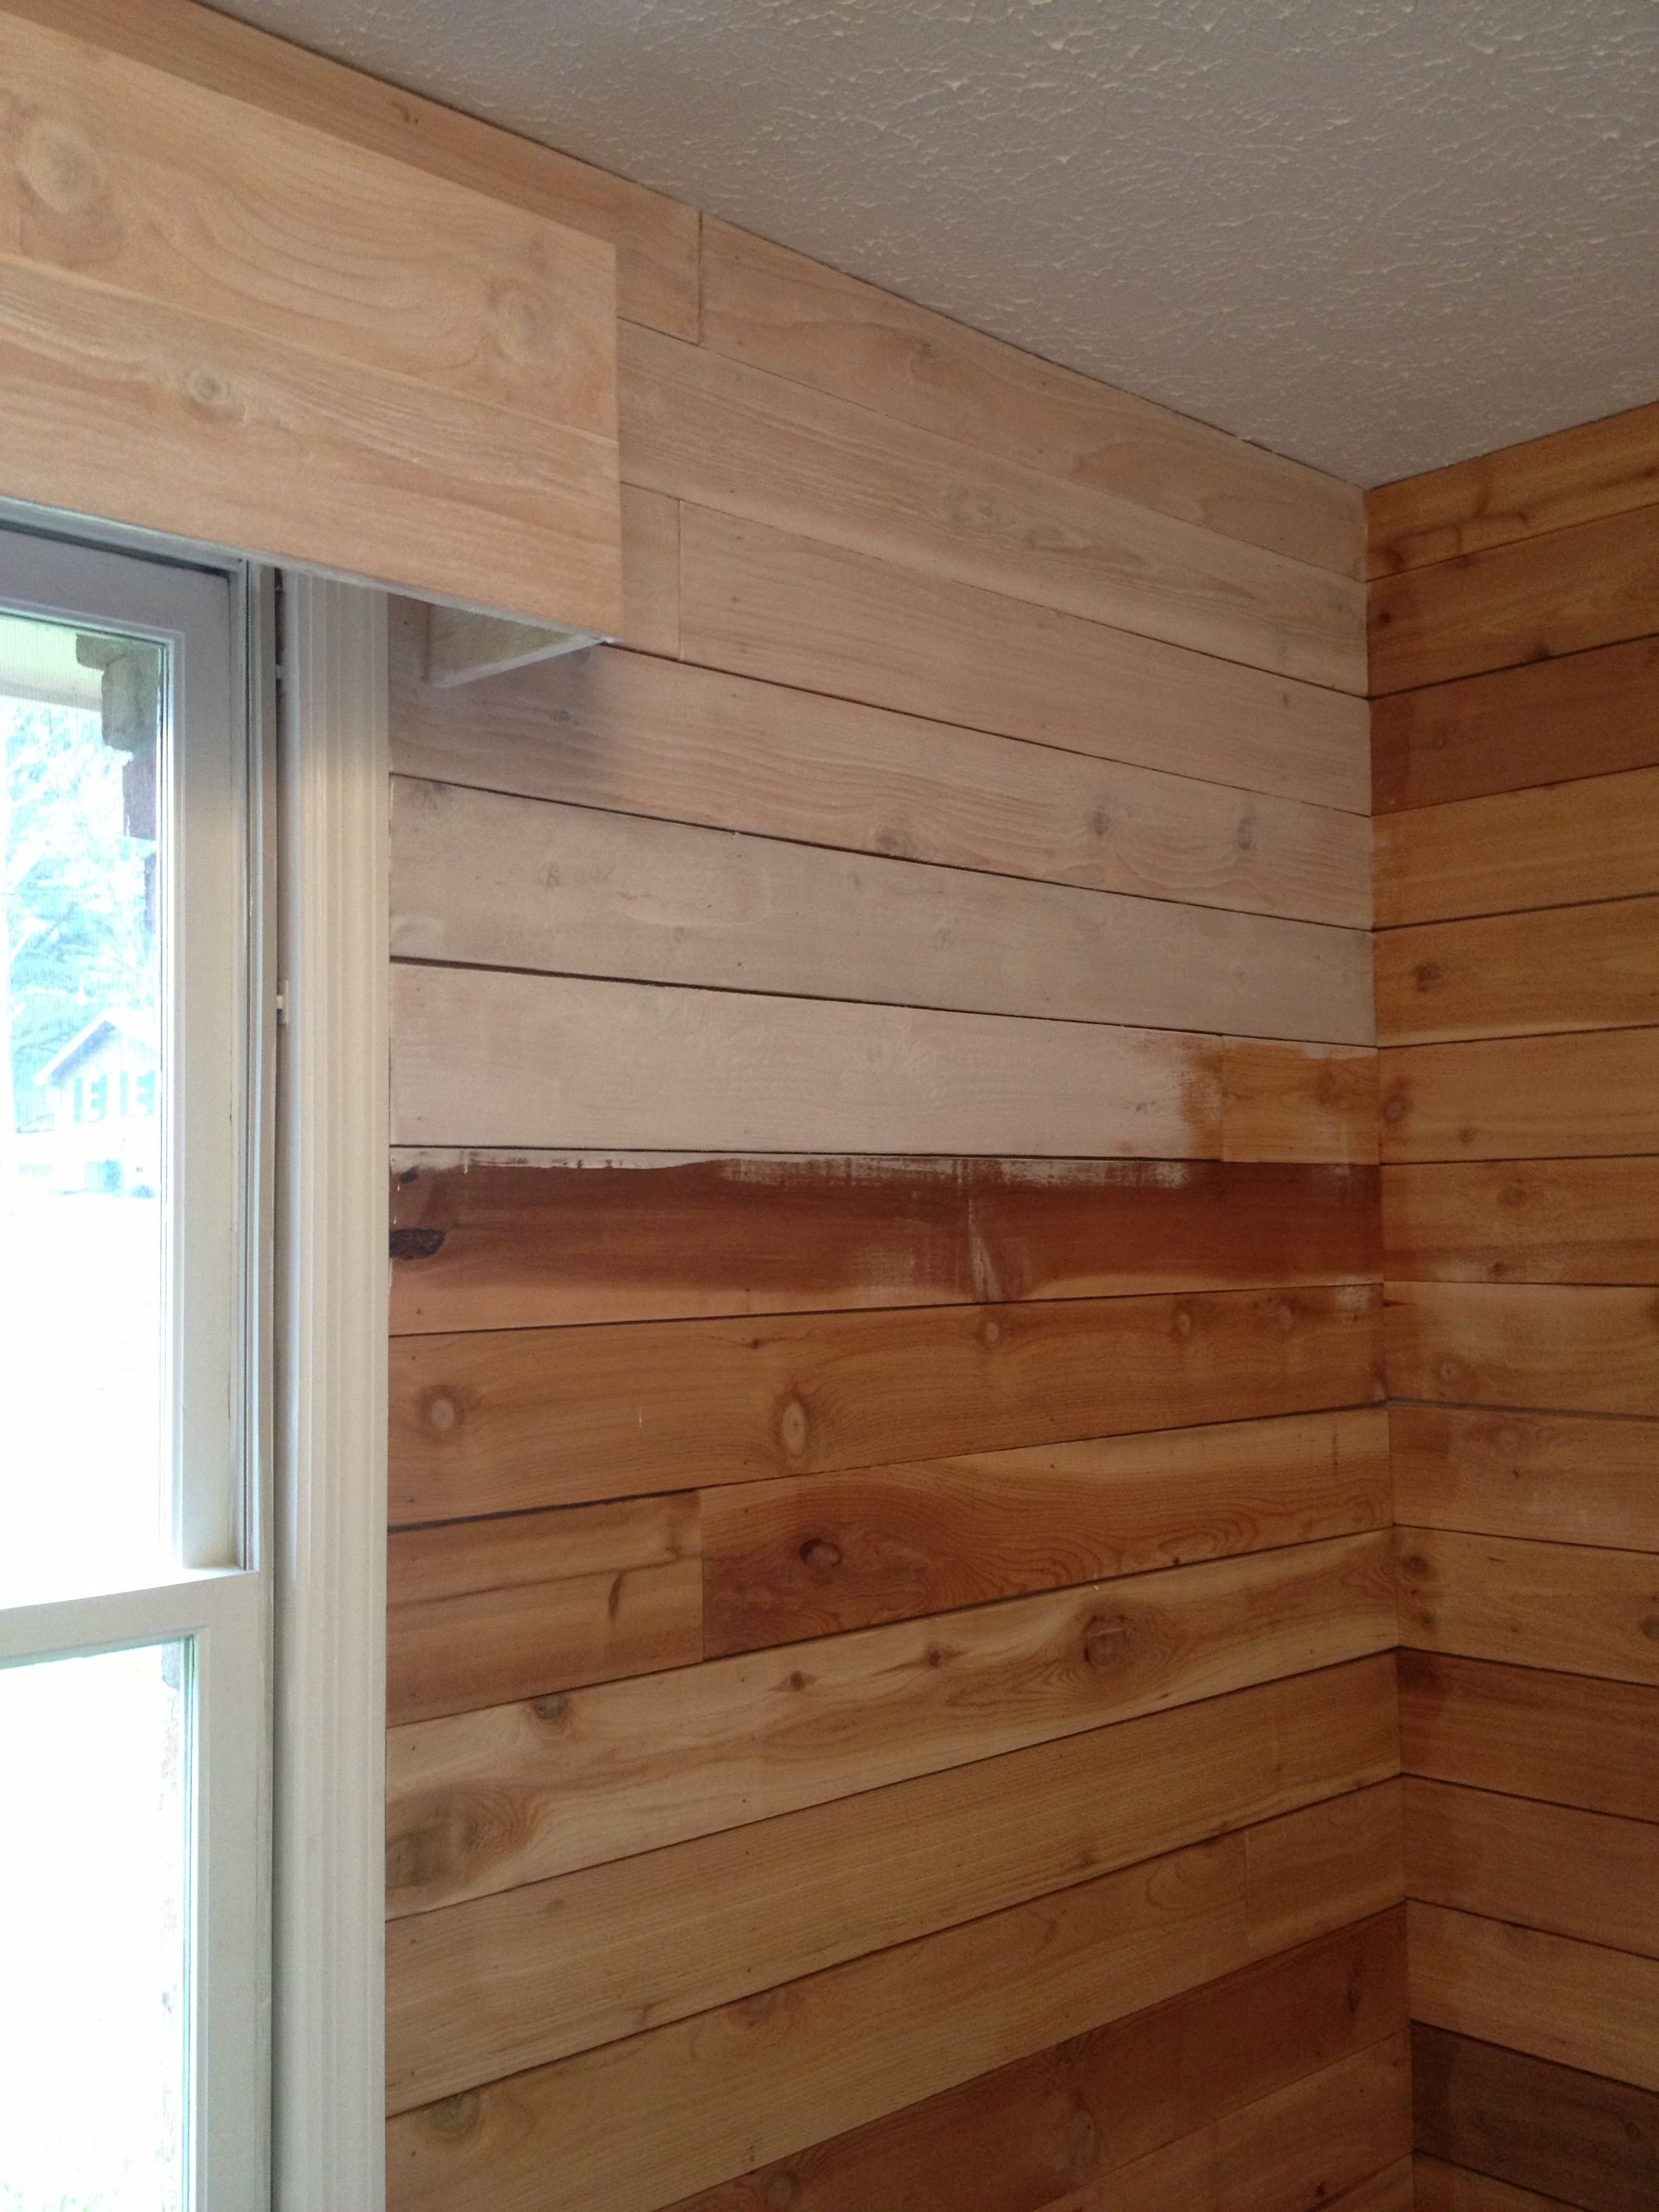 Plank Wall Paneling : Basement cedar planks home projects pinterest plank